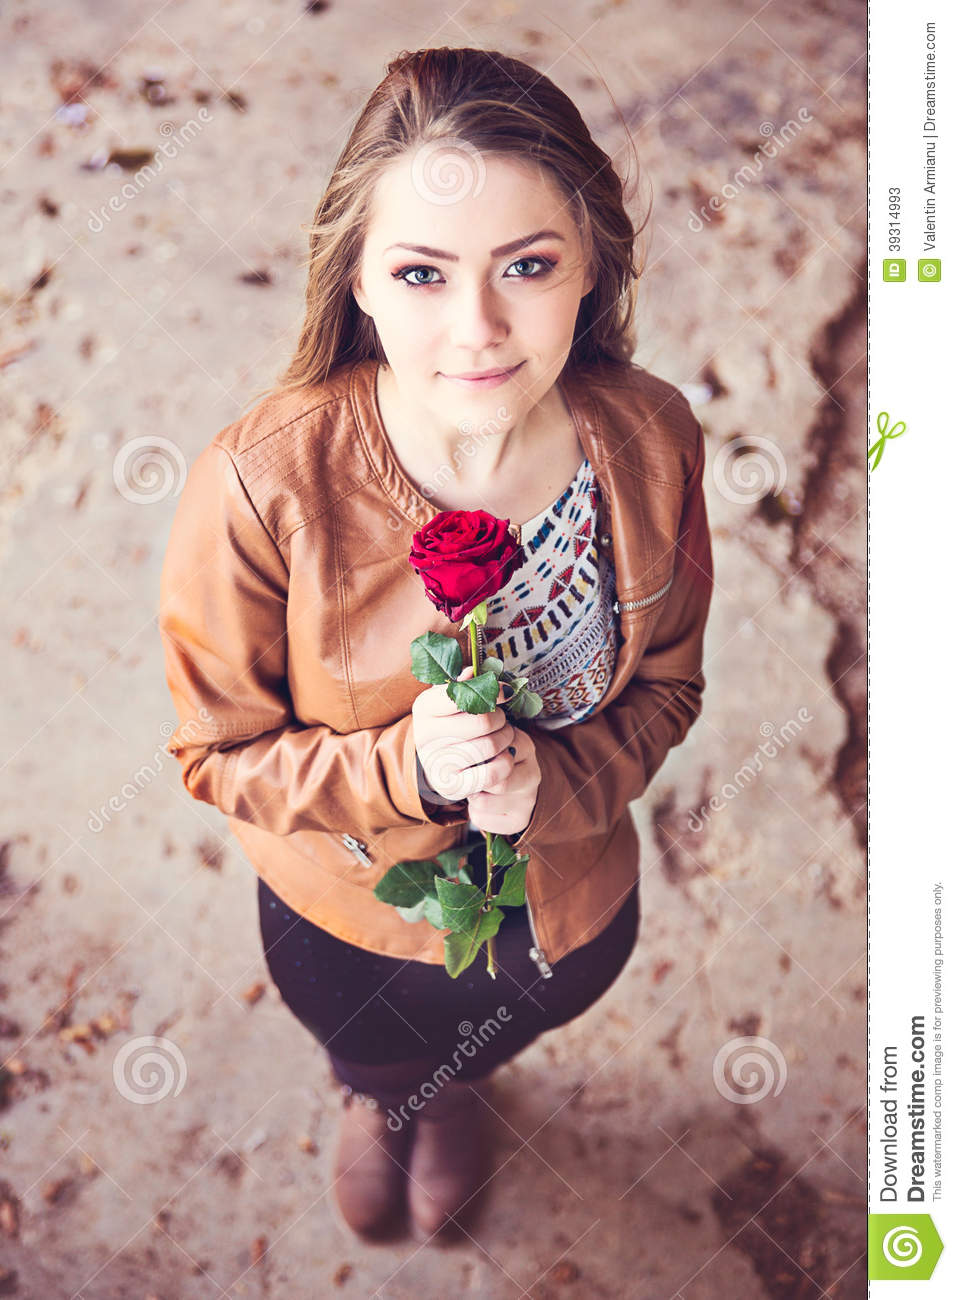 Young Teen Girl With Red Rose Stock Photo Image 39314993